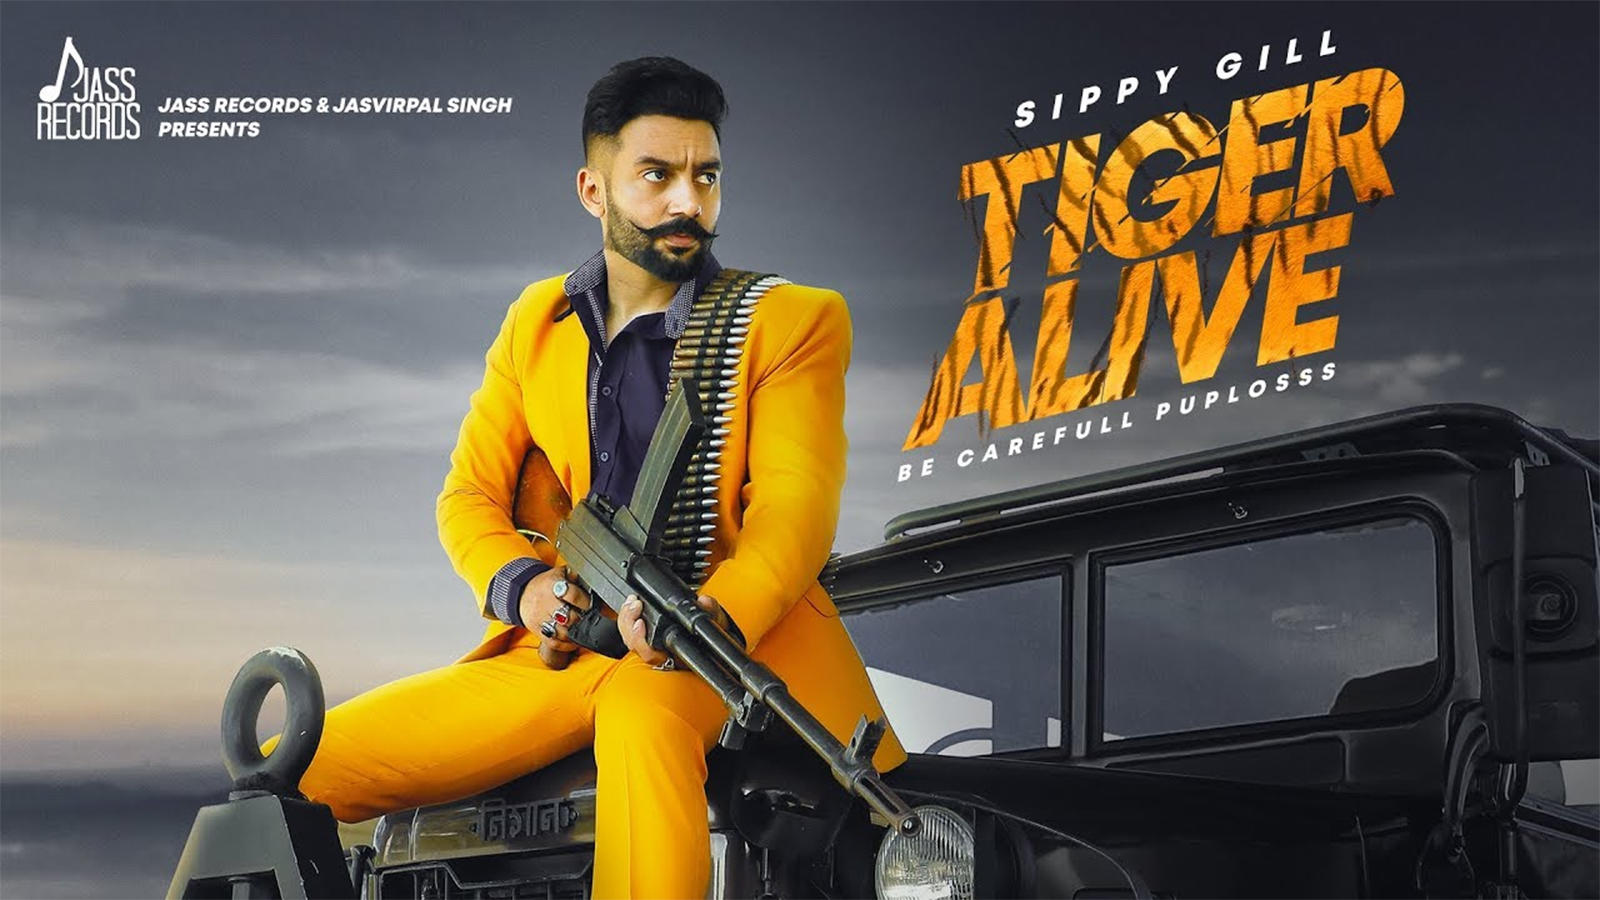 Latest Punjabi Song 'Tiger Alive' Sung By Sippy Gill